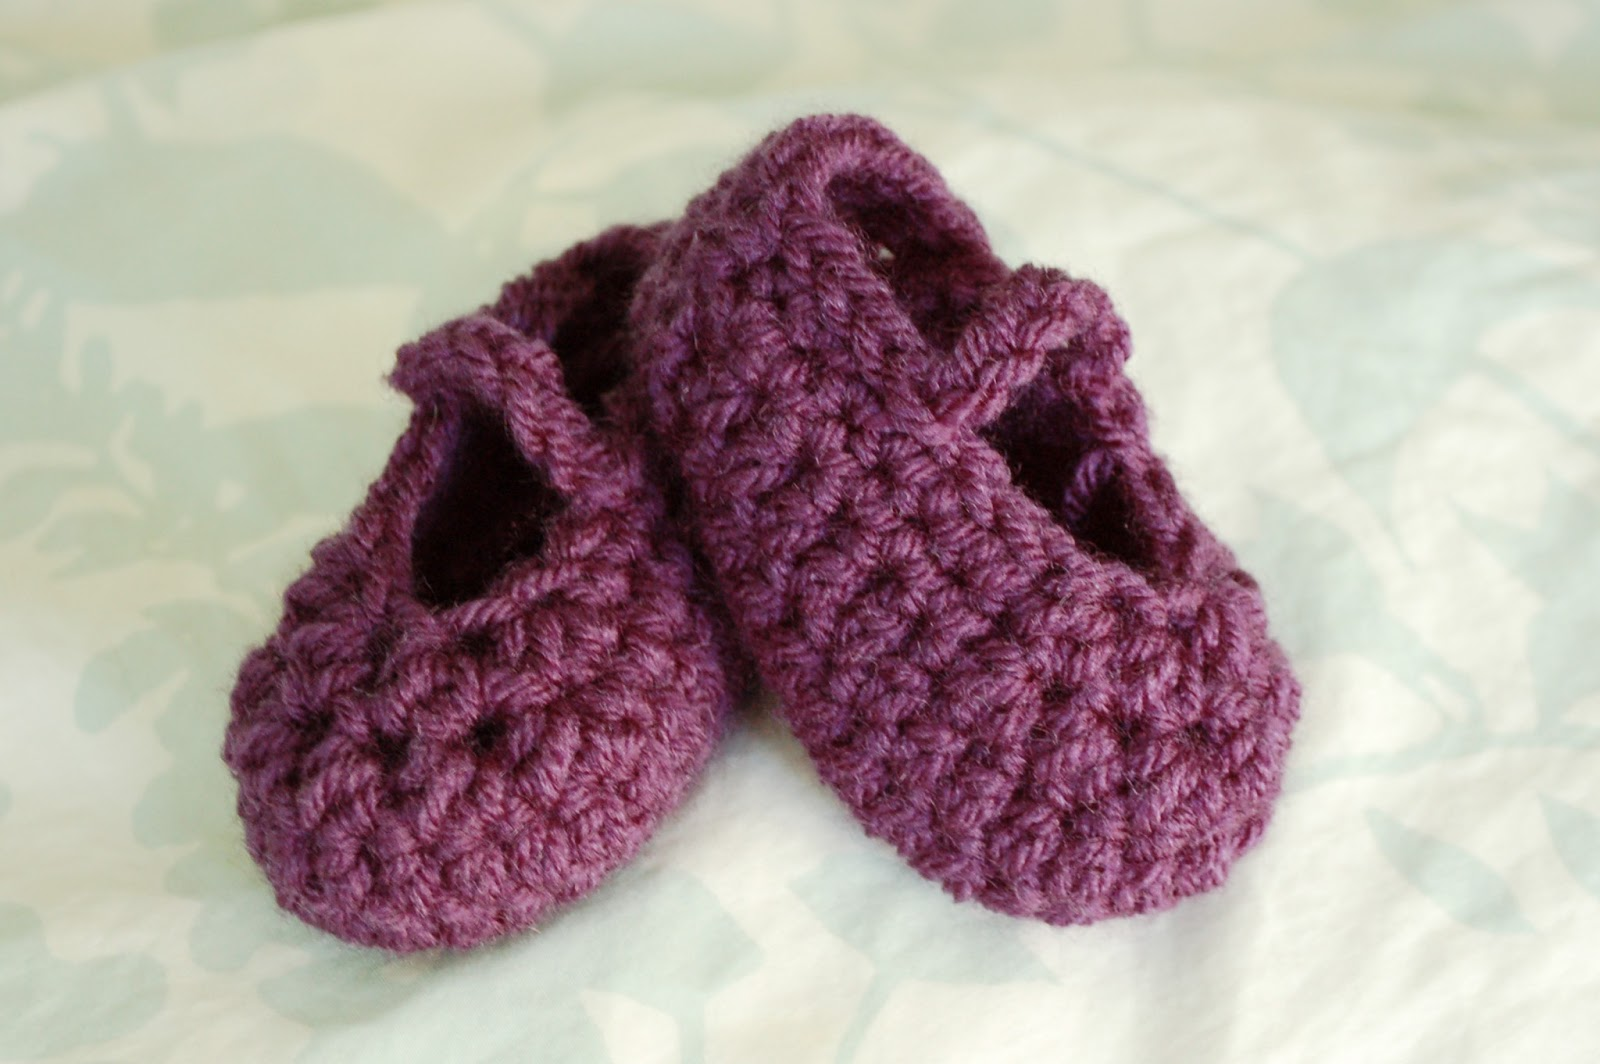 Alli Crafts: Free Pattern: Newborn Booties Worsted Weight Yarn